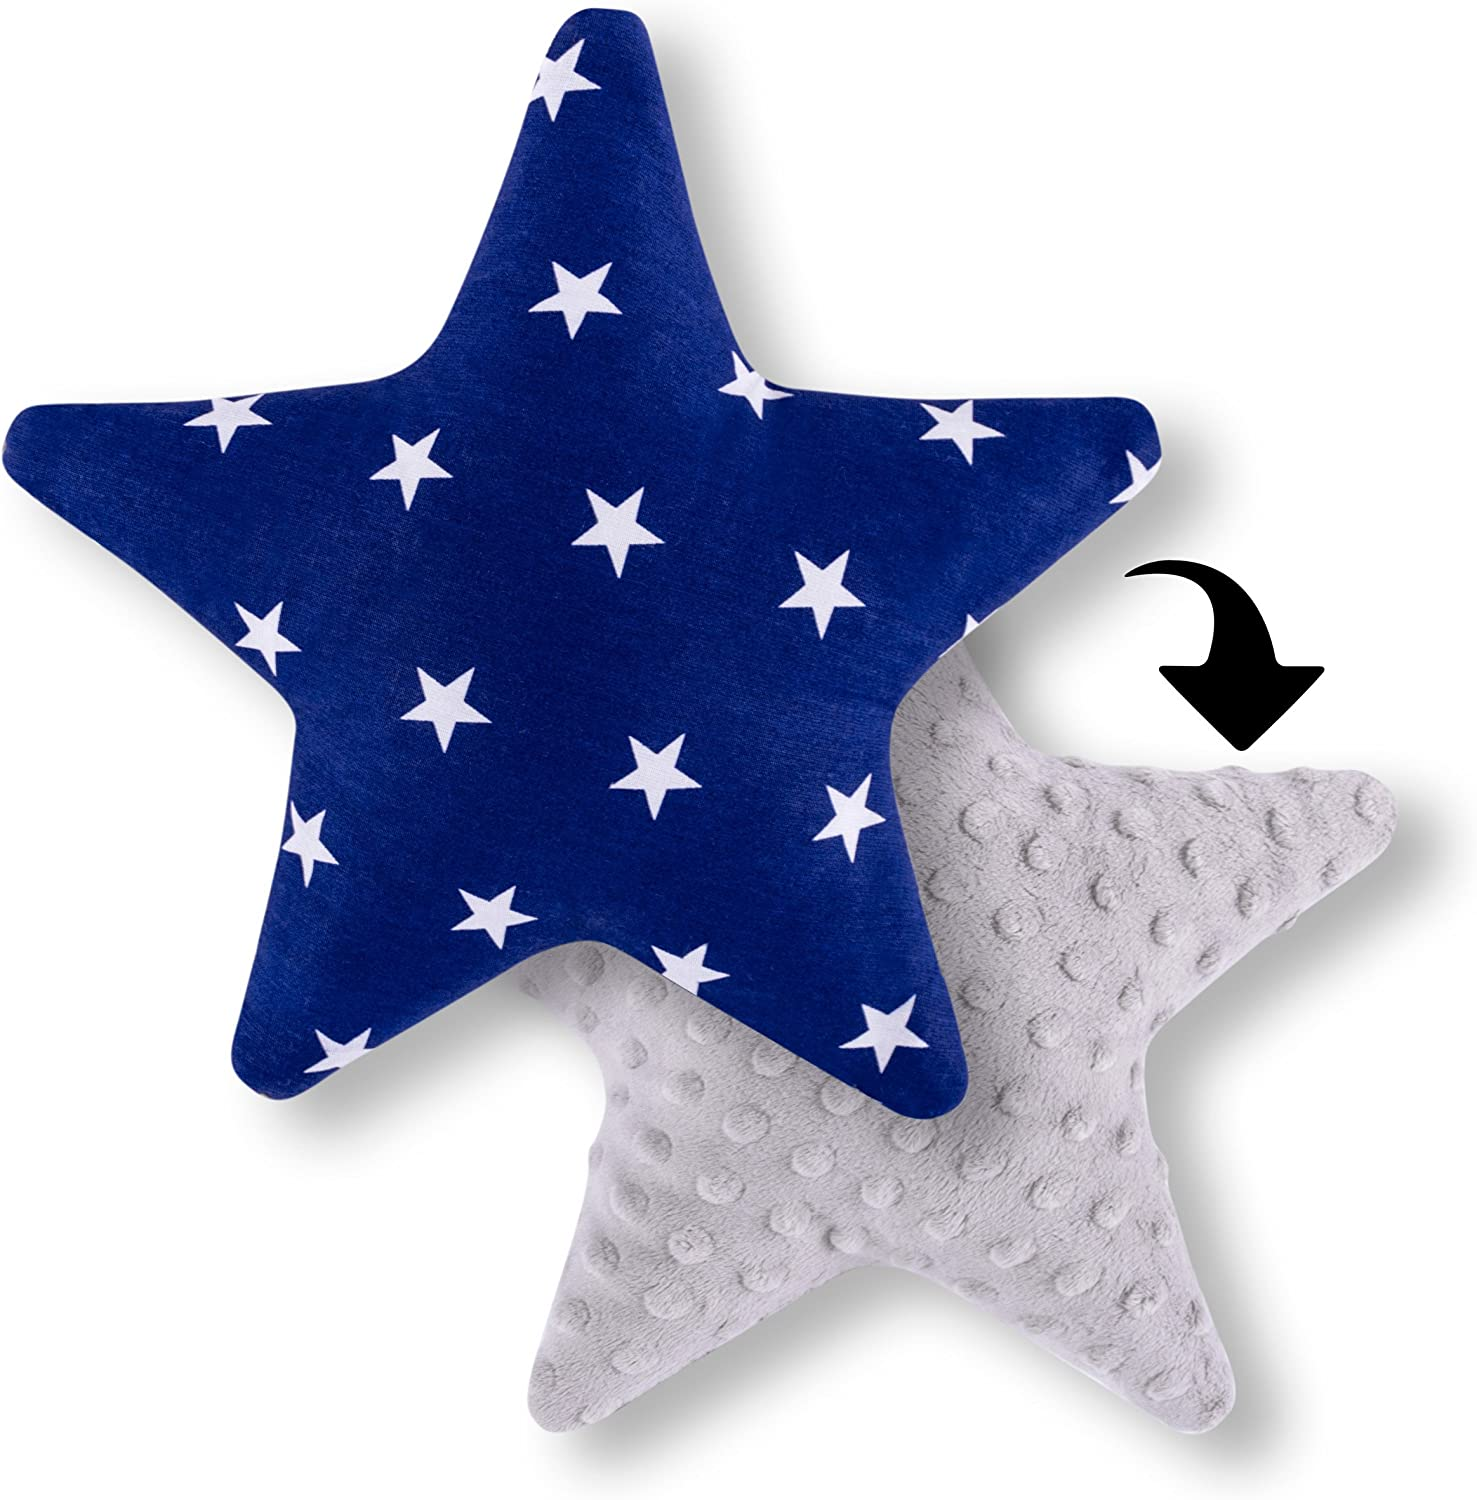 Amilian/® Star Shaped Pillow Cushion Two Sided Fleece//100/% Cotton Cosy Fluffy Striped Print White Approx 28 cm